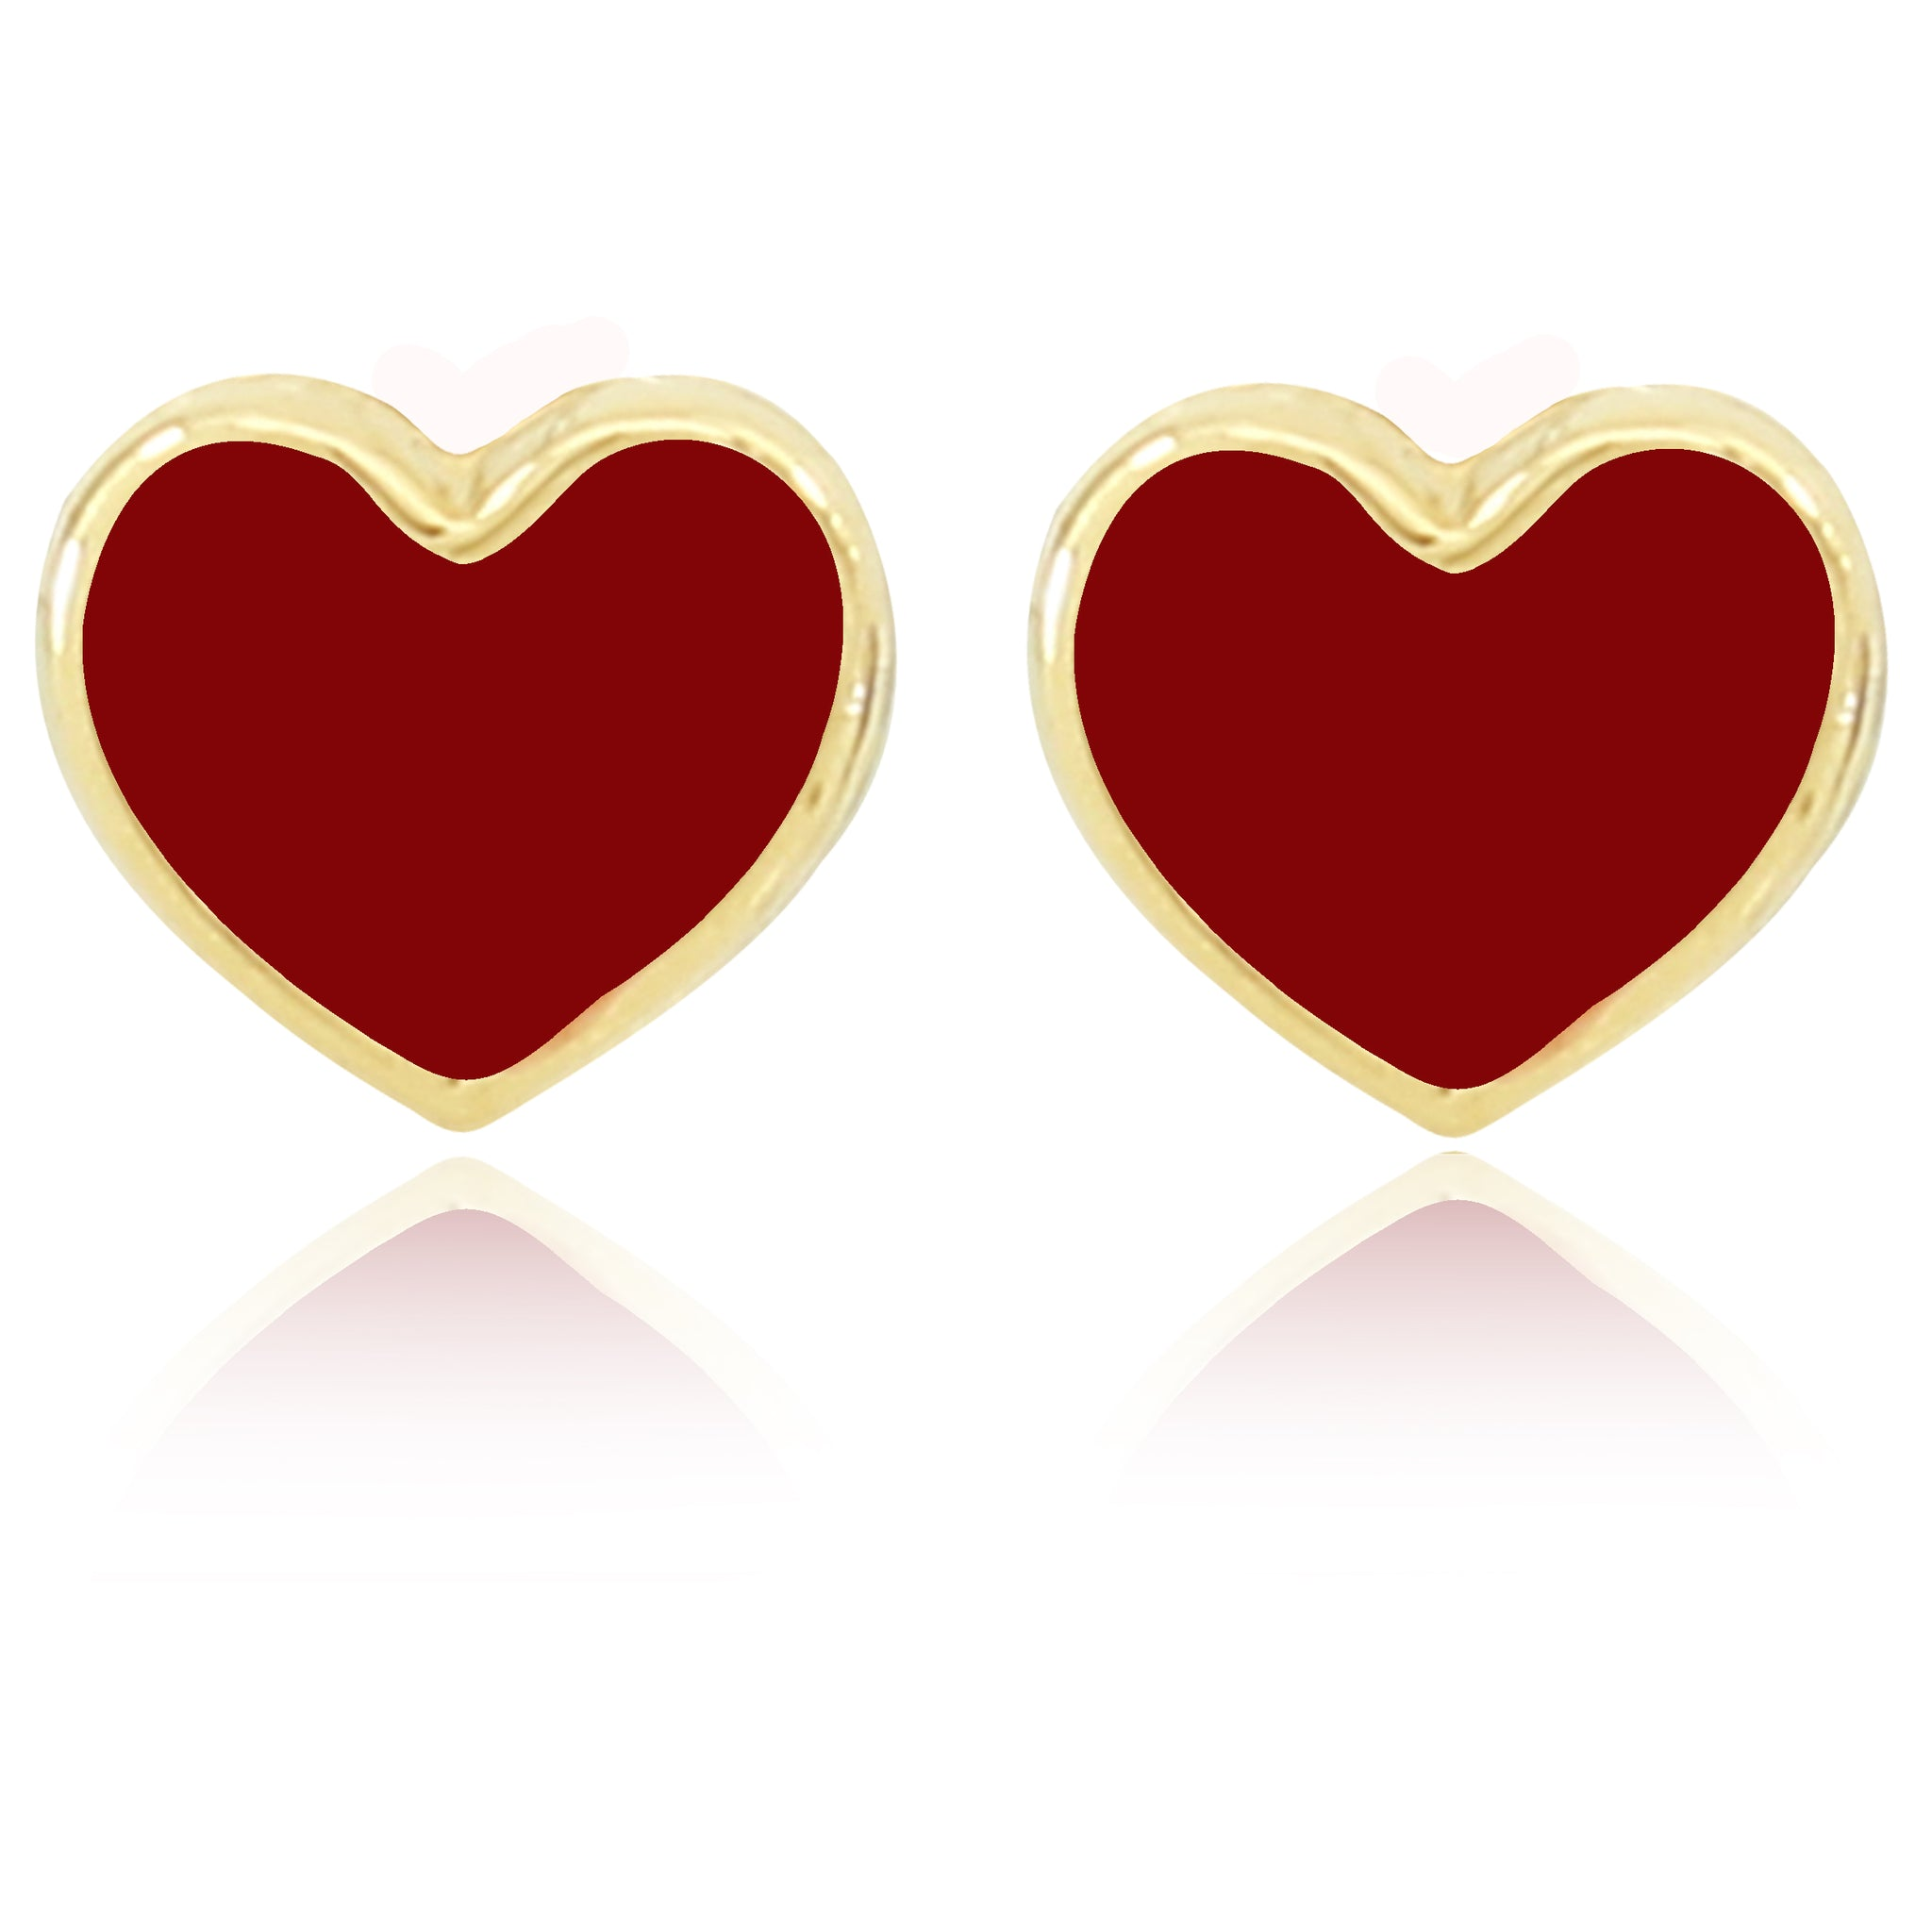 Shape of My Heart Earrings - Red